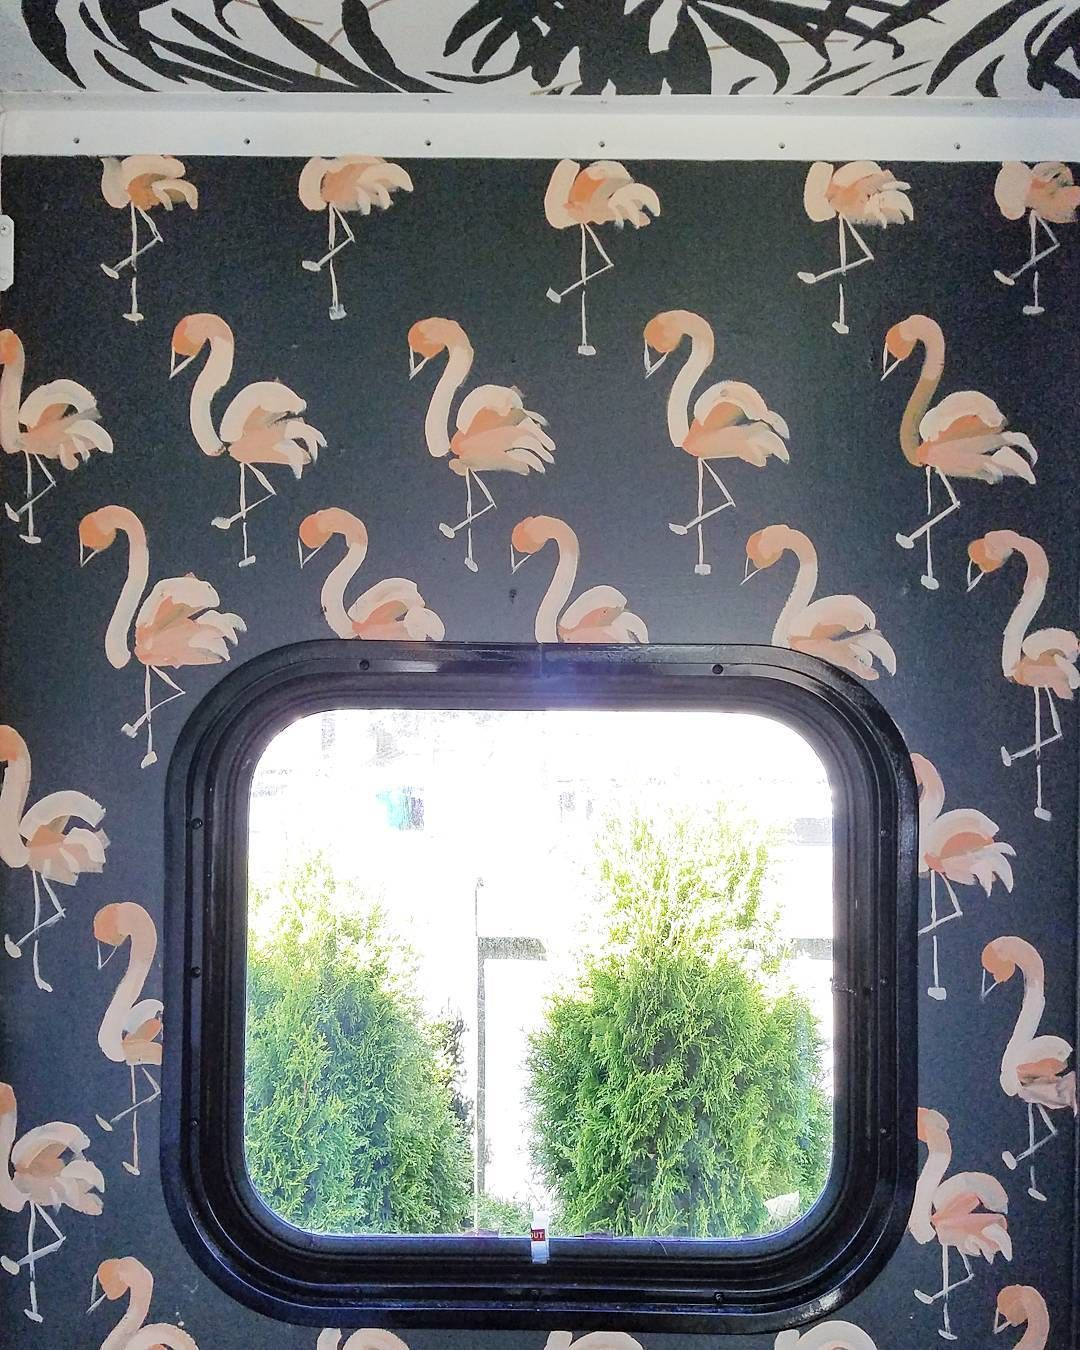 "3,424 Likes, 163 Comments - Liz Kamarul (@liz_kamarul) on Instagram: ""Of course I painted baby flamingos in the RV, it wouldn't feel like home without them! . #rvlife…"""